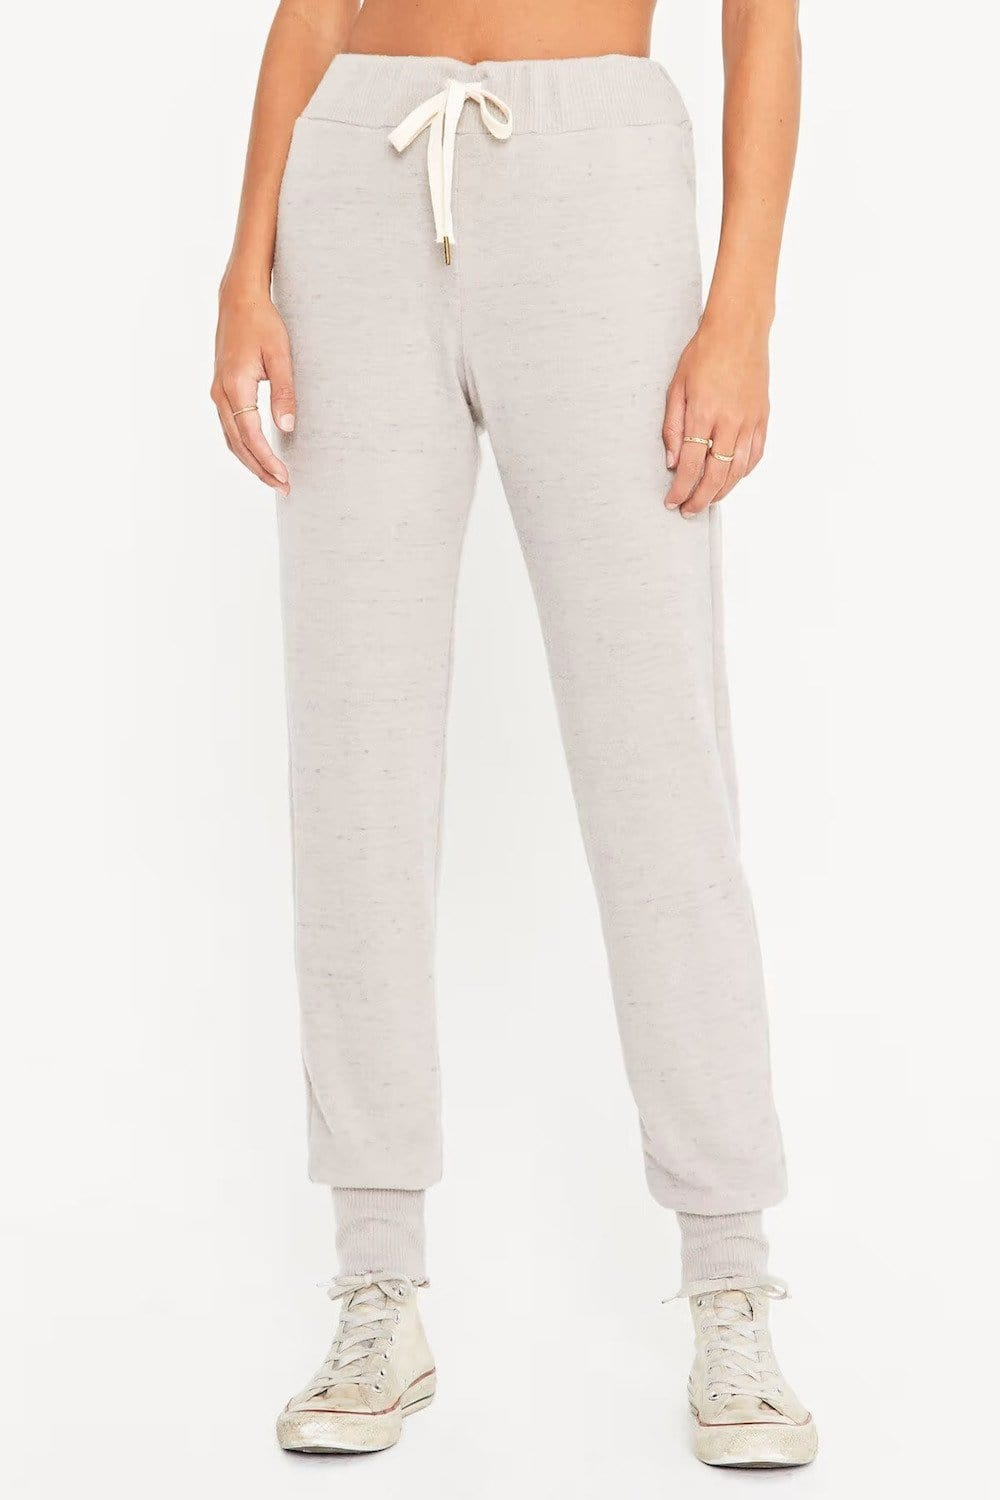 Project Social T Sway Cozy Pant Grey